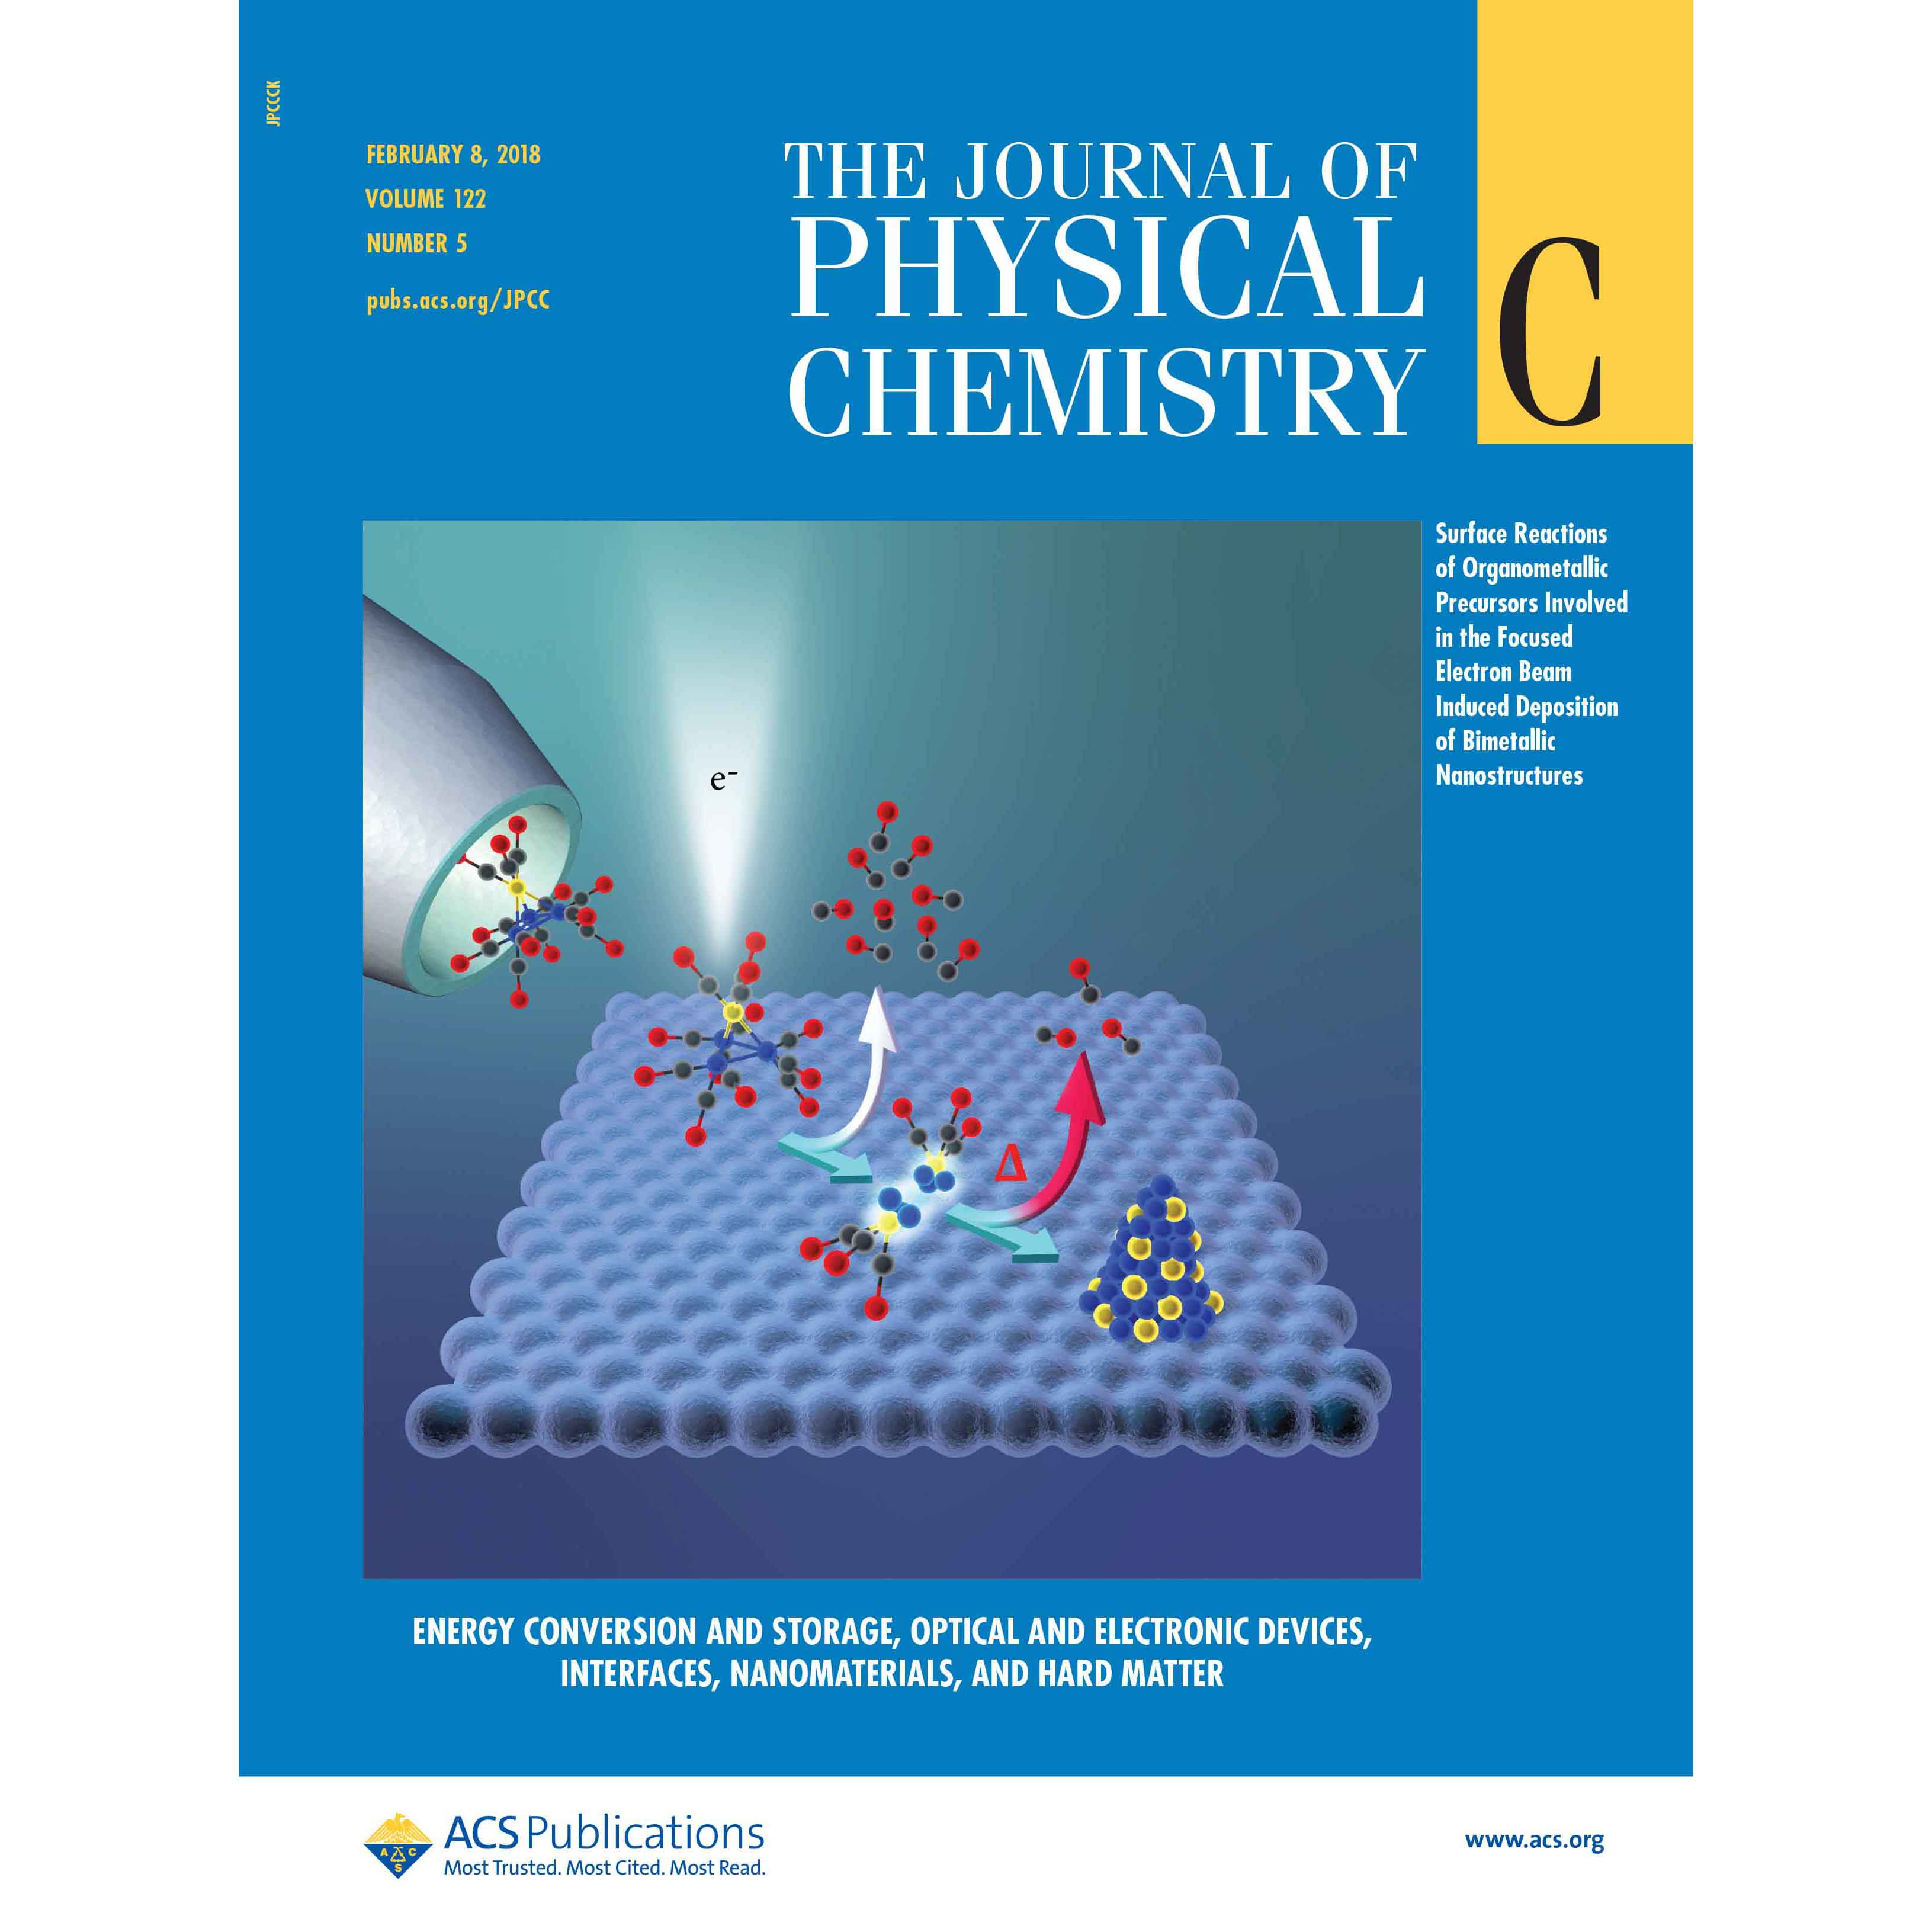 Fairbrother Lab Featured on Cover of Journal of Physical Chemistry C